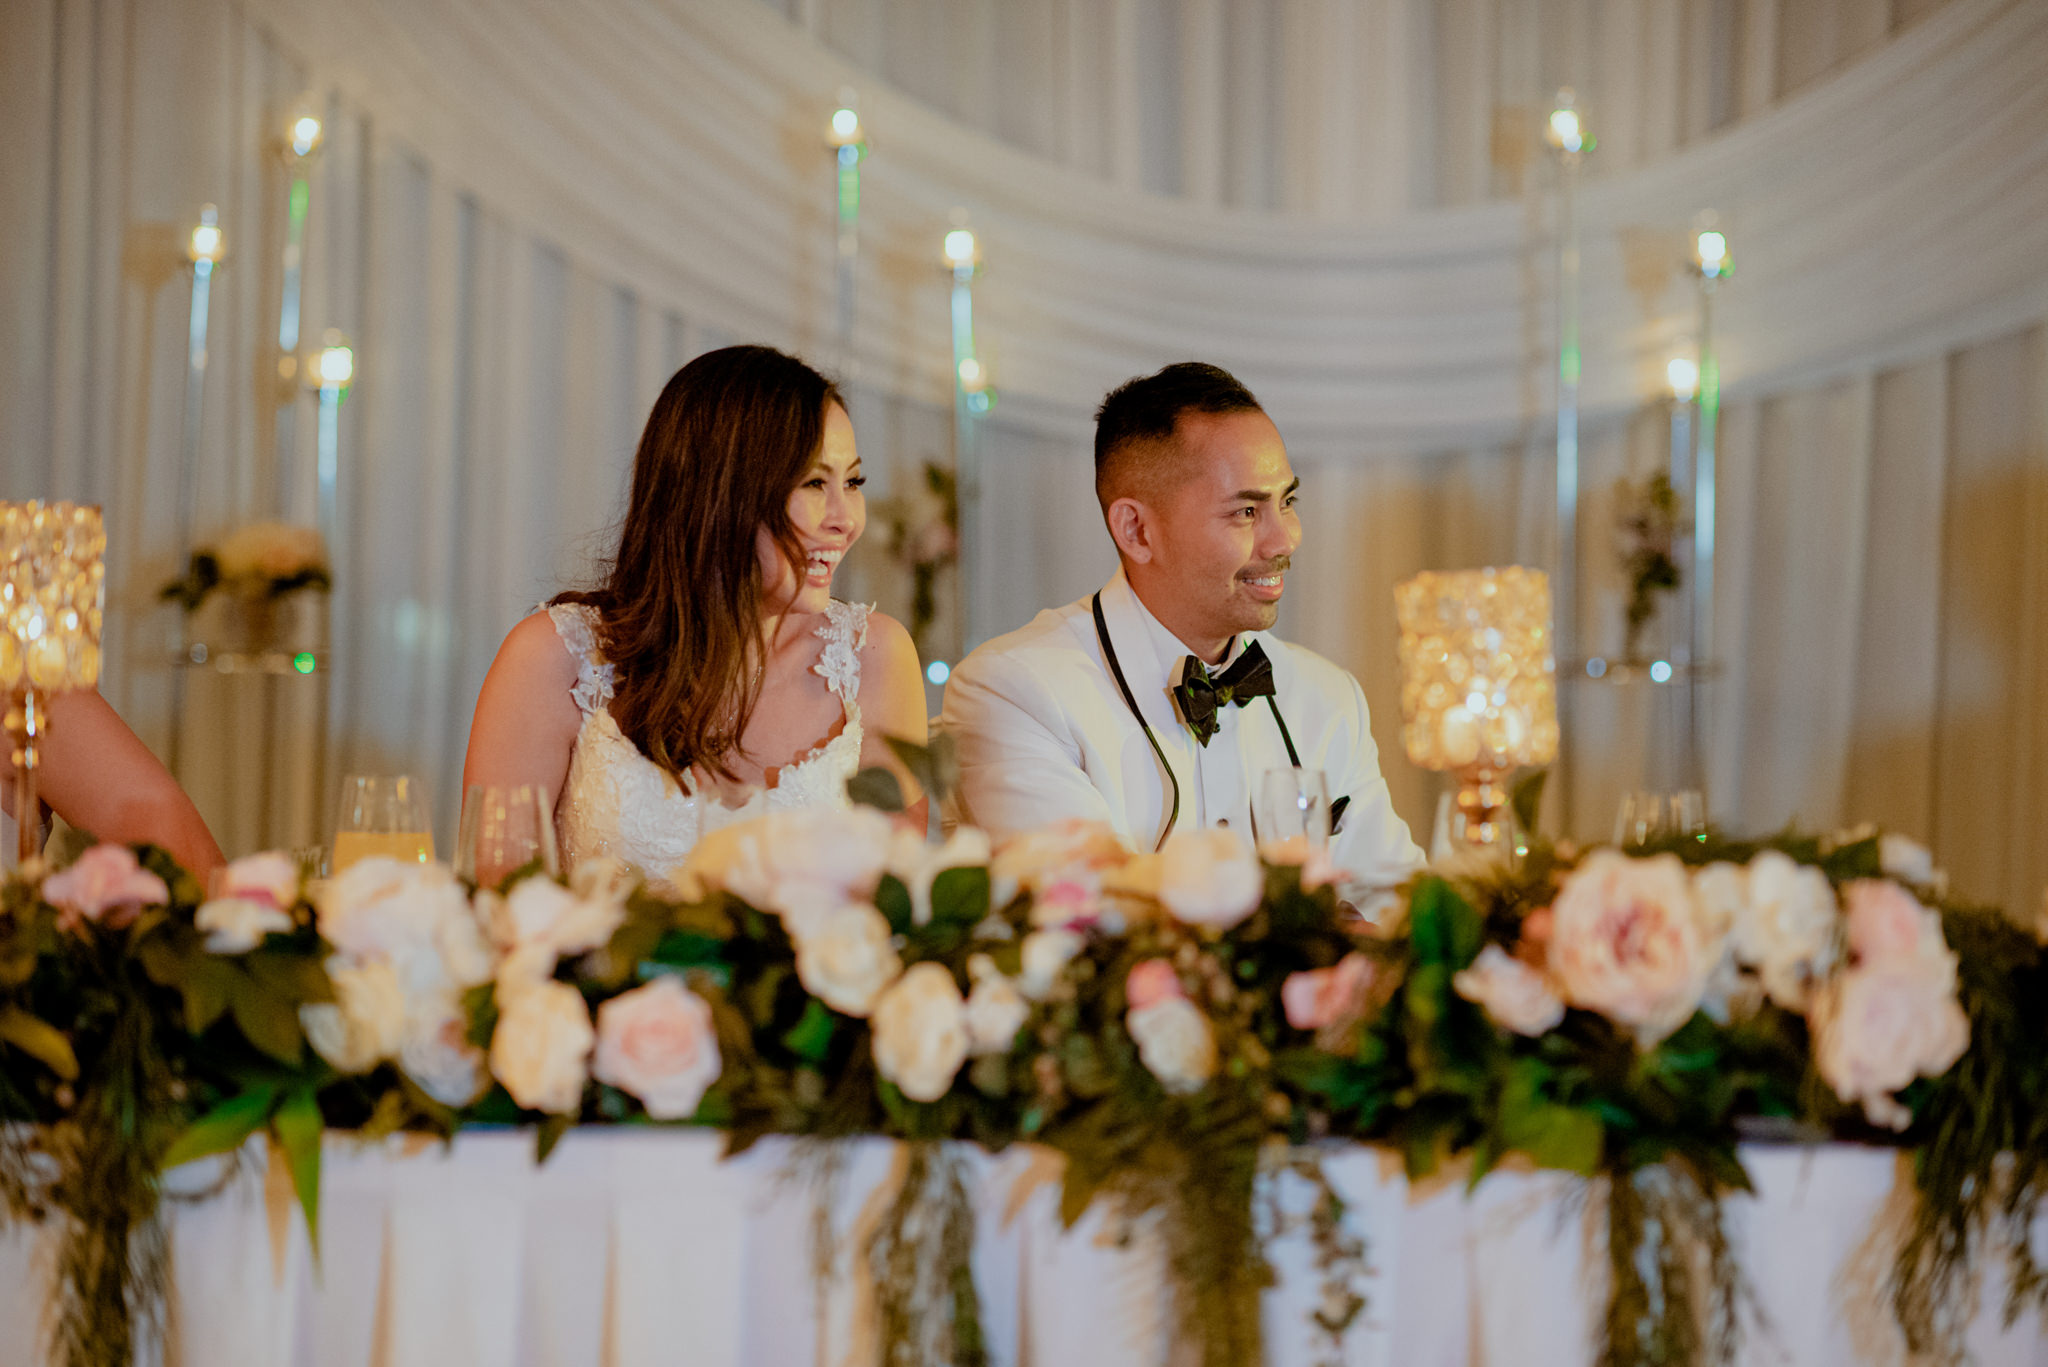 Newlyweds sit at their bridal table and laugh at speeches